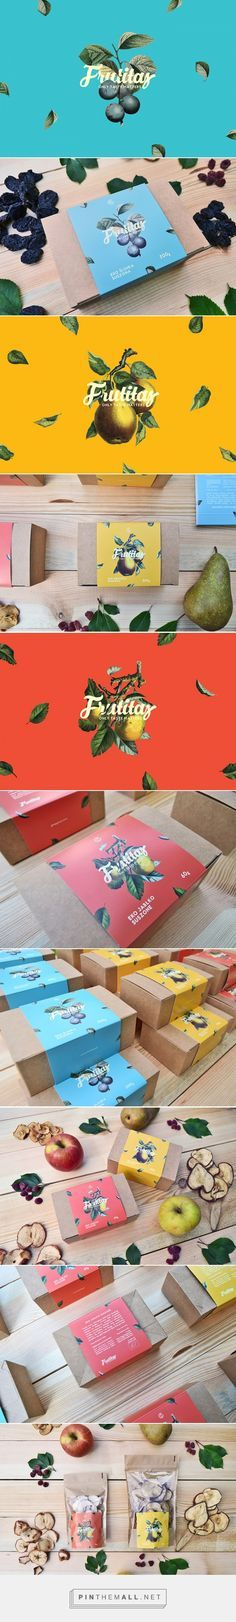 FRUTITAS processed fruit by PARIS+HENDZEL STUDIO.